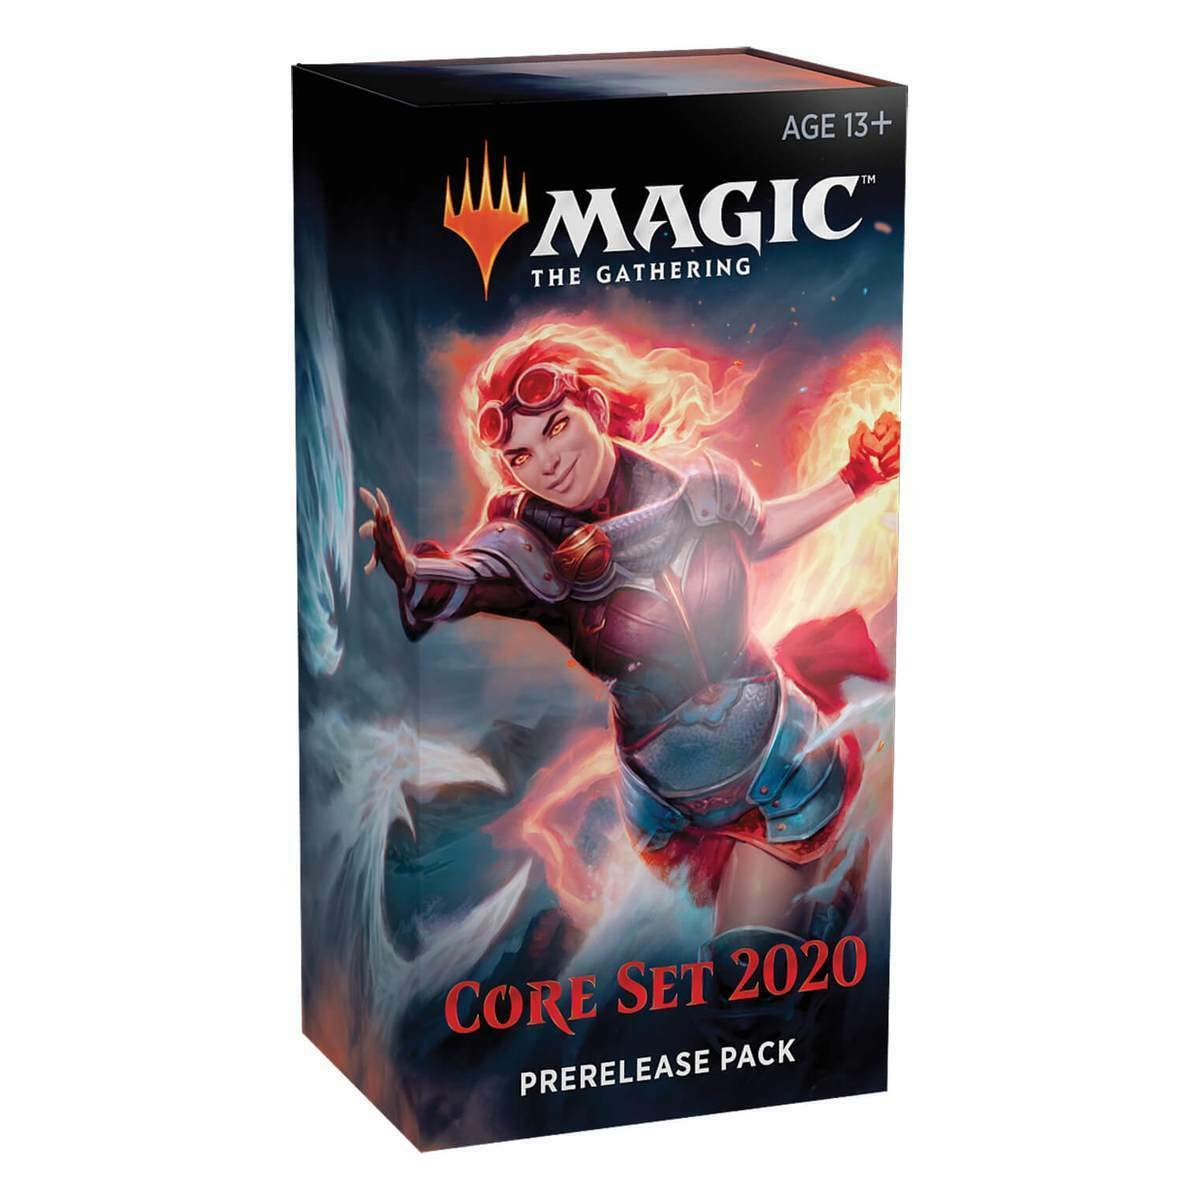 Magic (M20) 2020 Core Set Prerelease Pack